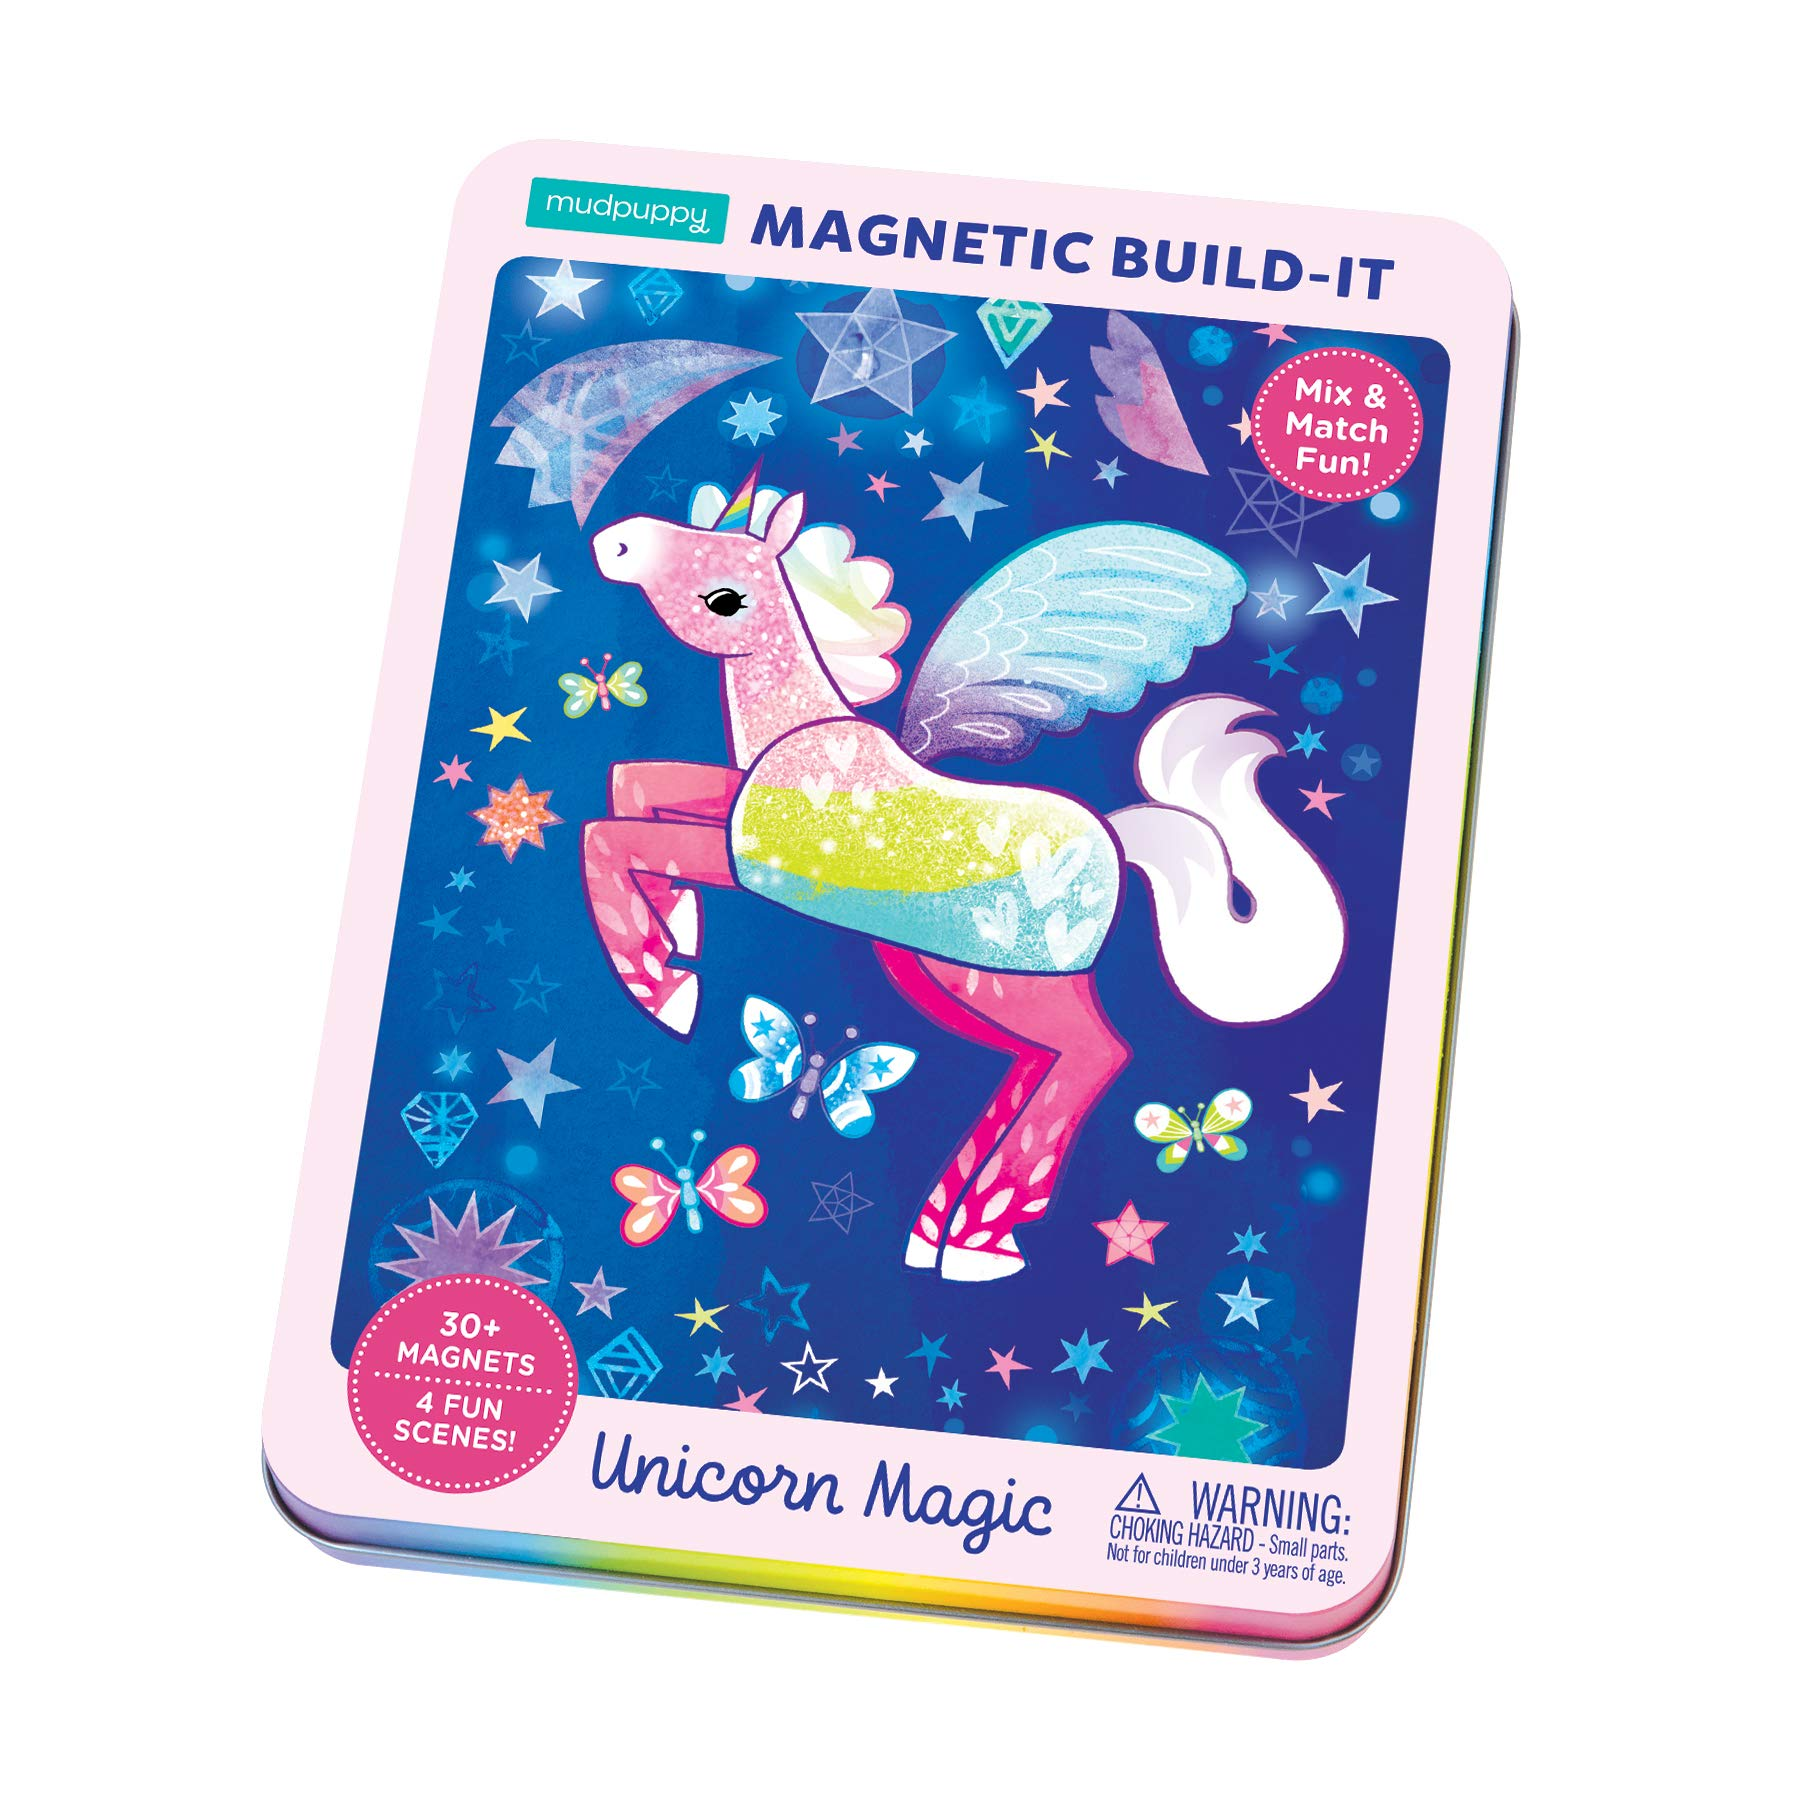 Mudpuppy Unicorn Magic Magnetic Build-It - Ages 4+ - Magnetic Play Set with 4 Backgrounds, 30+ Magnets - Unicorn Toy for Girls and Boys - Great for Travel, Quiet Time - Magnets Adhere to Tin Package by Mudpuppy